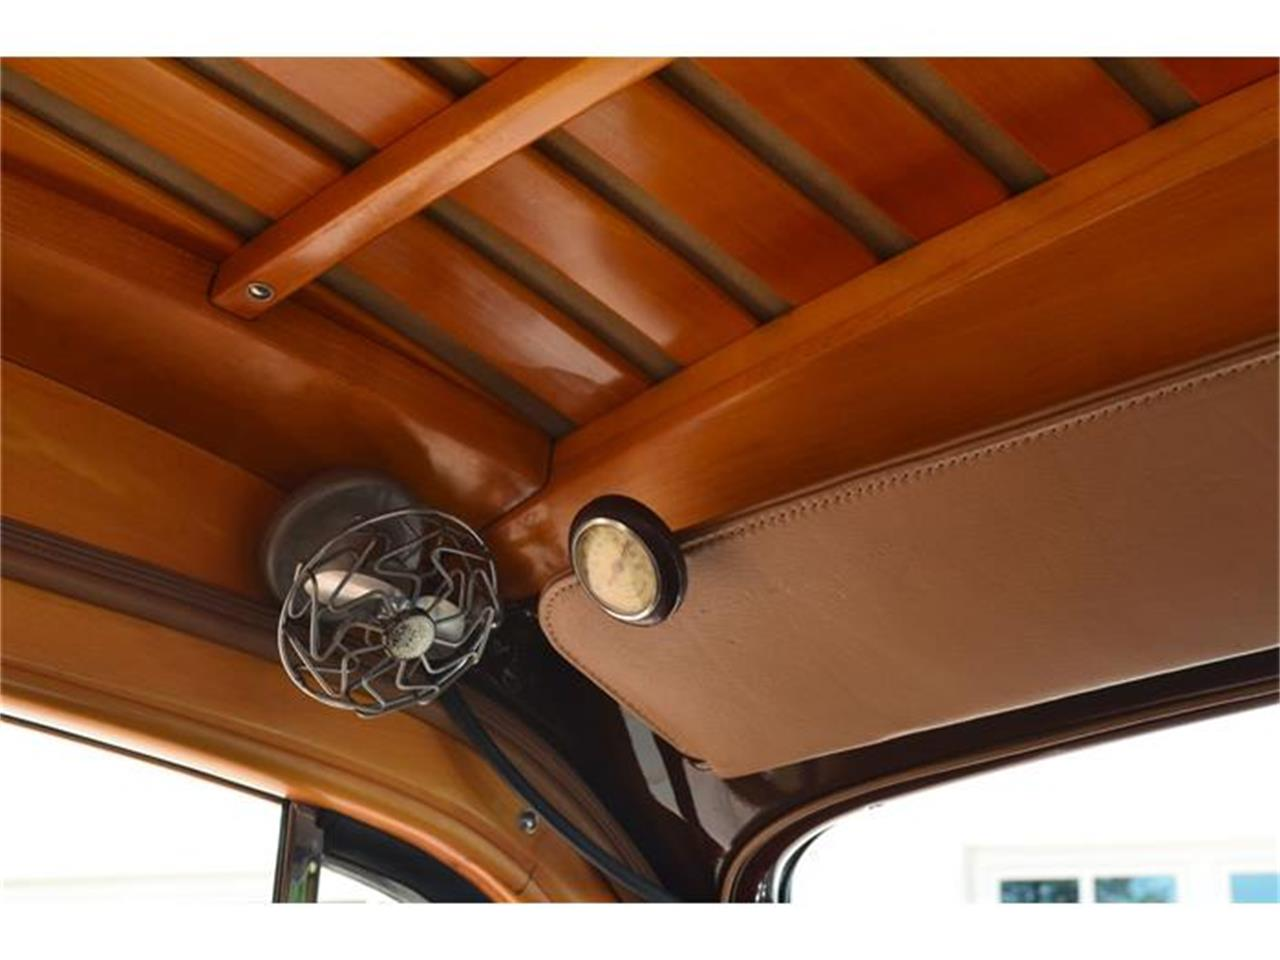 Large Picture of '48 Mercury Woody Wagon located in Tuftonboro New Hampshire - $149,000.00 Offered by Spoke Motors - IQS7